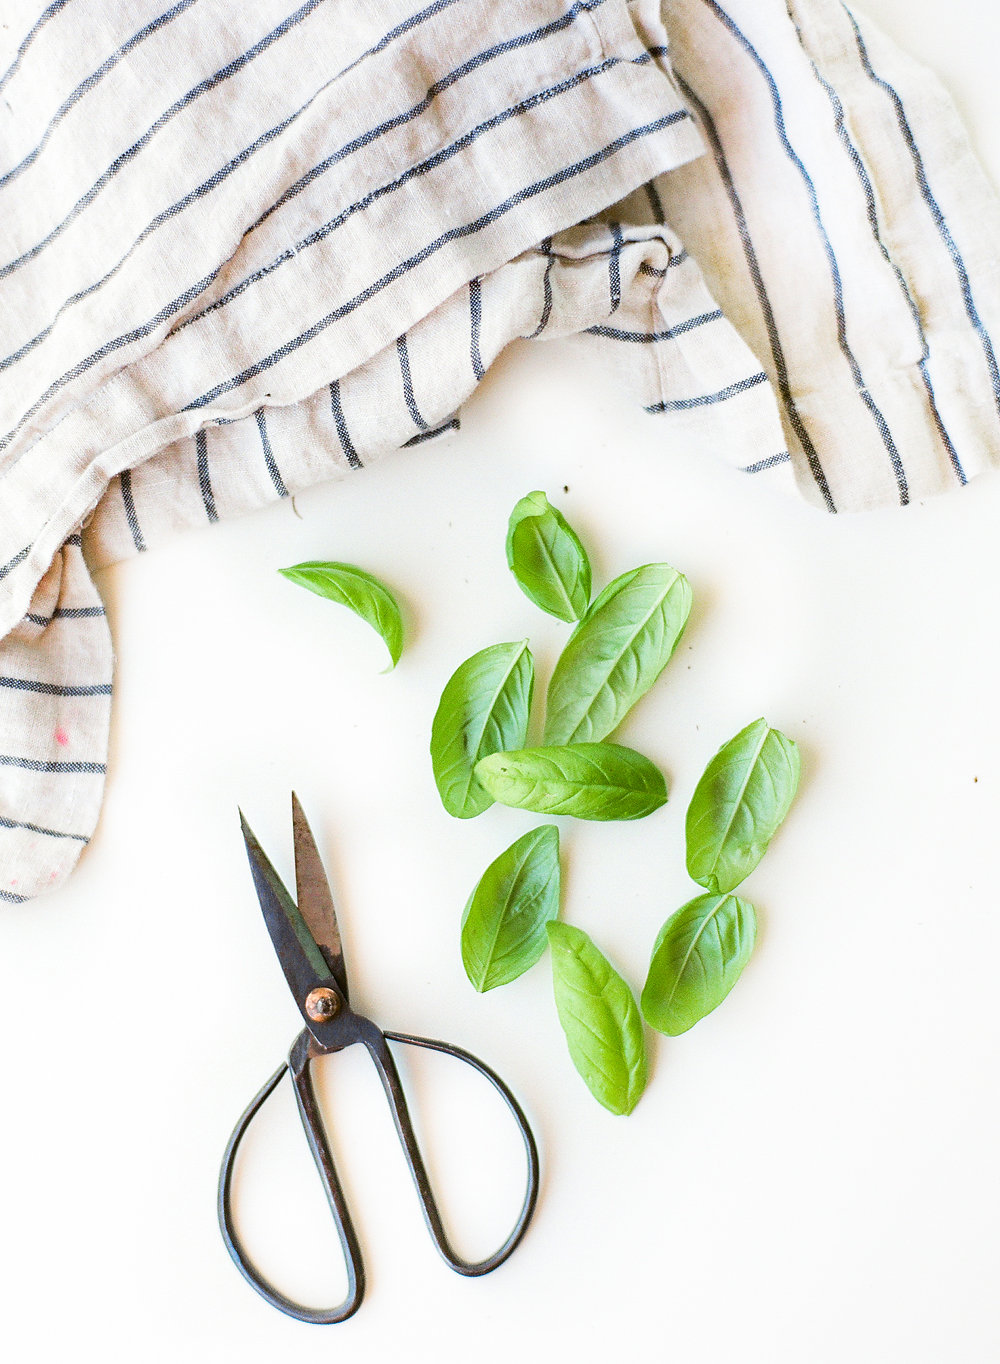 Now it's time to eat! You know the drill, pour yourself a glass of wine (we love the Kendall-Jackson Vintner's Reserve Chardonnay) and step to it. This Lemon Verbena Basil Pesto pasta dish is absolutely divine and it's the perfect introduction to your new #DIY herb garden..